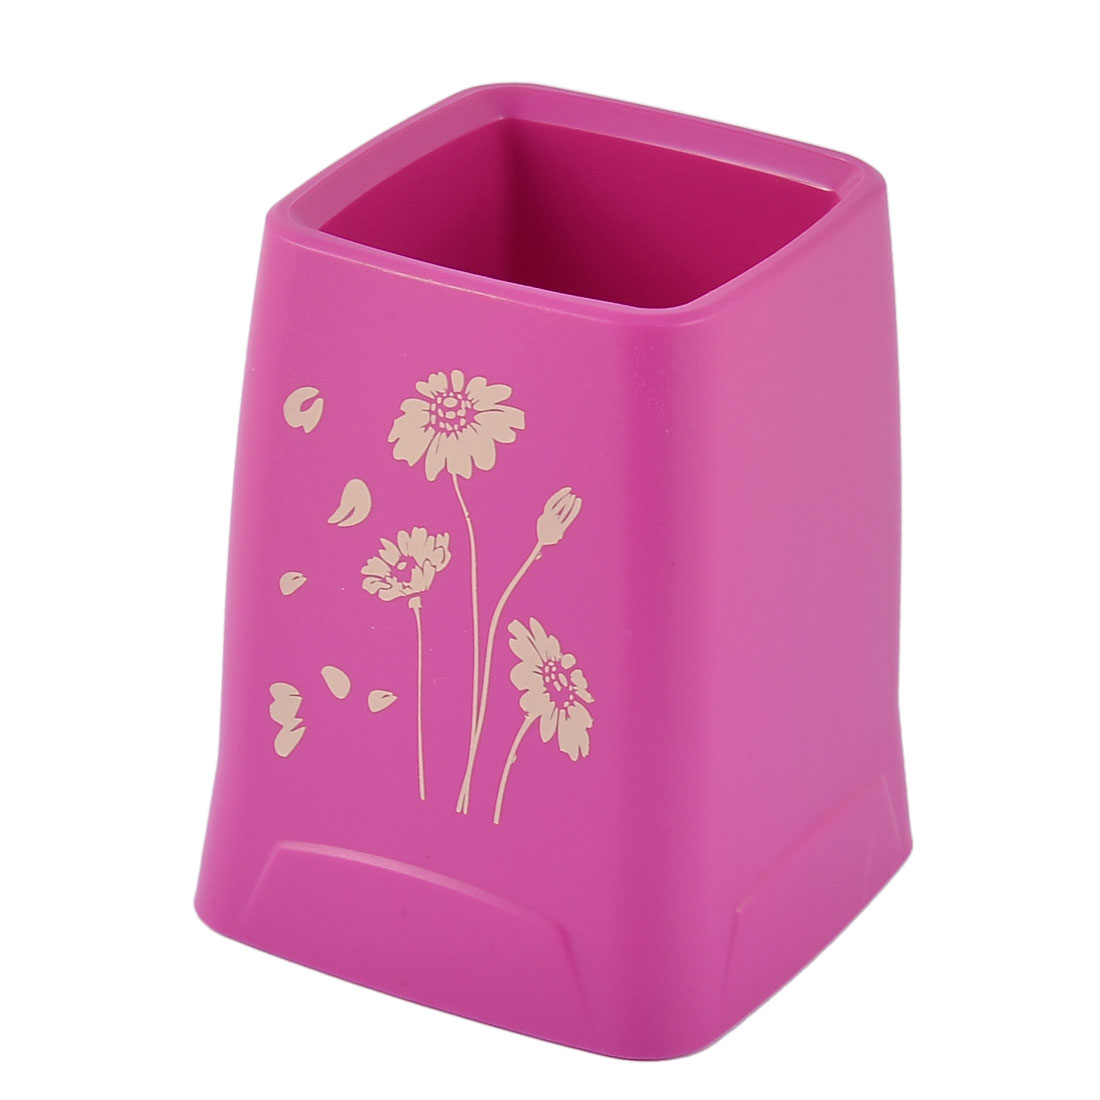 Office School Stationery Plastic Flower Pattern Pen Pencil Cup Container Tubular Penrack Brush Pot Rose Red